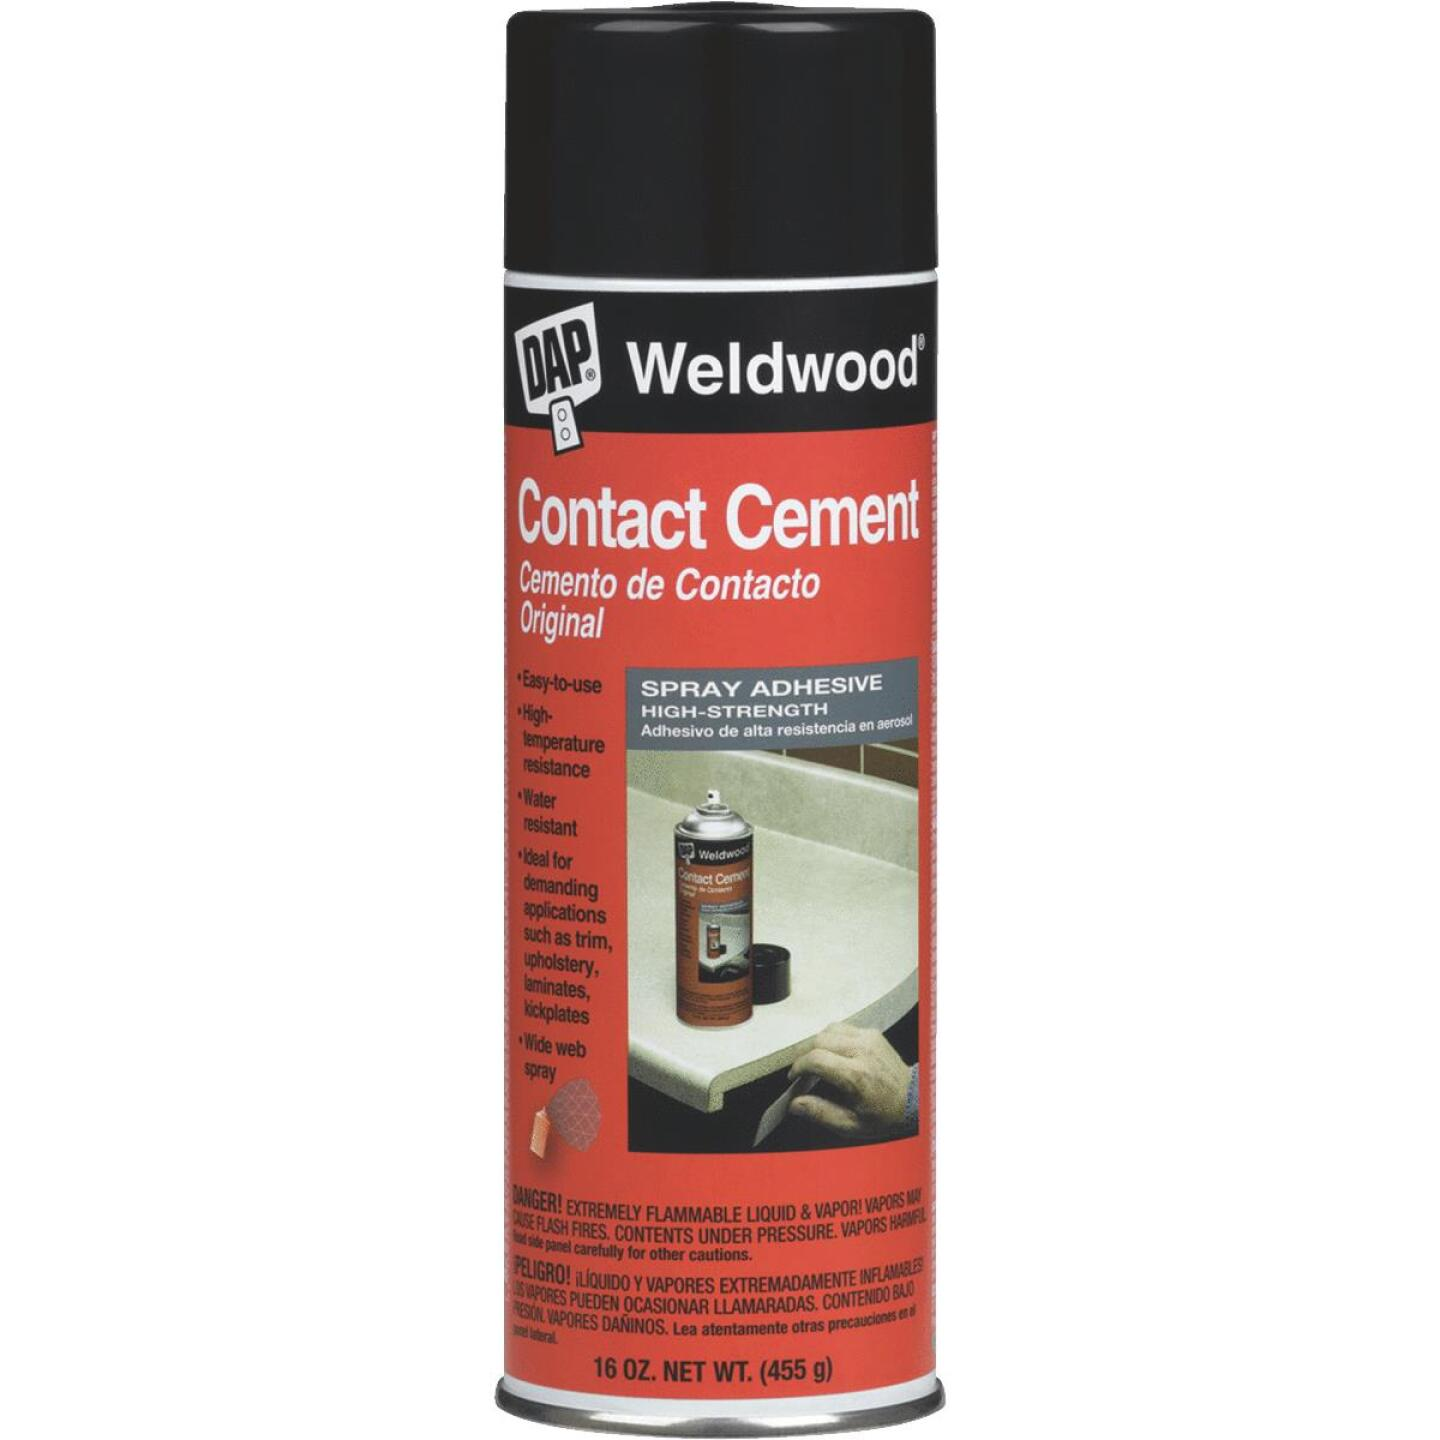 Dap Welwood 16 Oz. Contact Cement Image 1